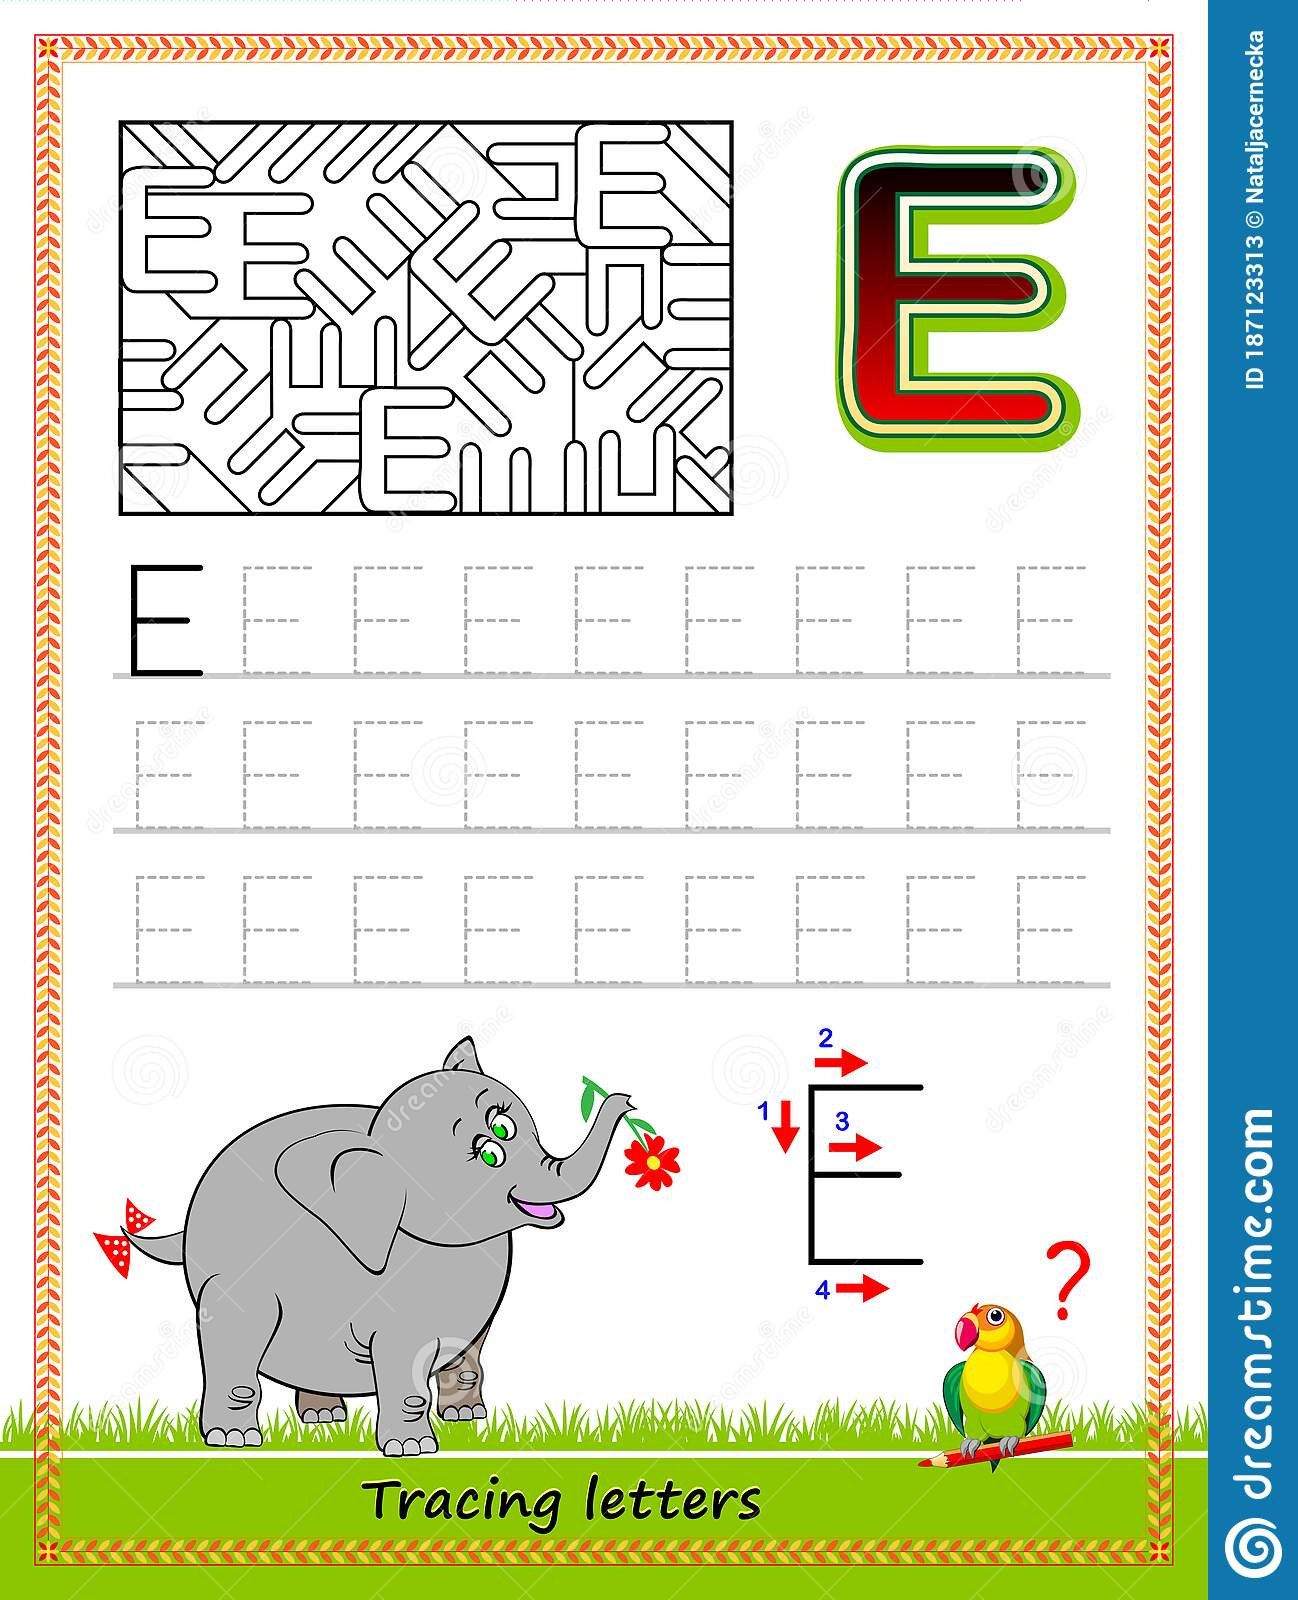 Worksheet For Tracing Letters. Find And Paint All Letters E for Letter Tracing Online